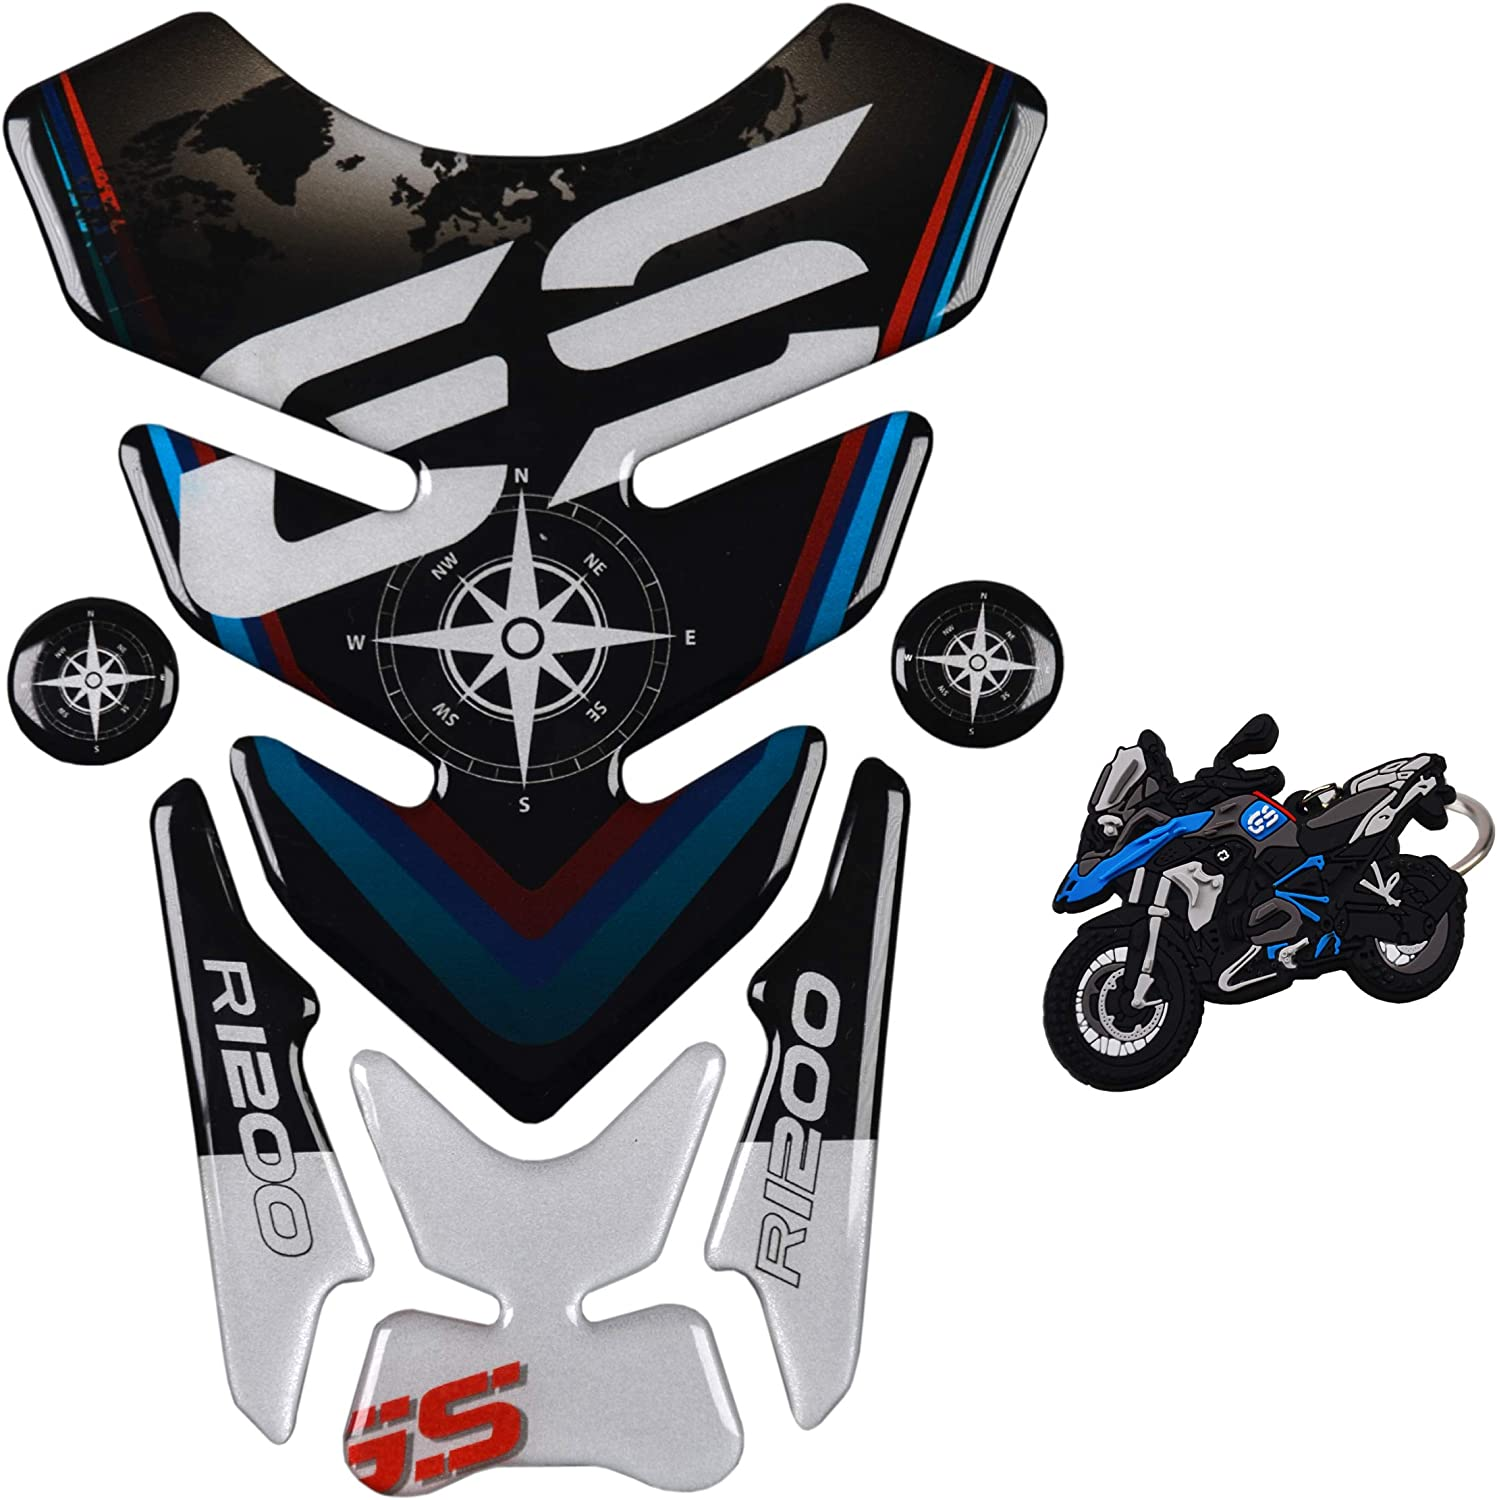 BMW R1200 GS Black Motorcycle Tank Pad Protector Sticker